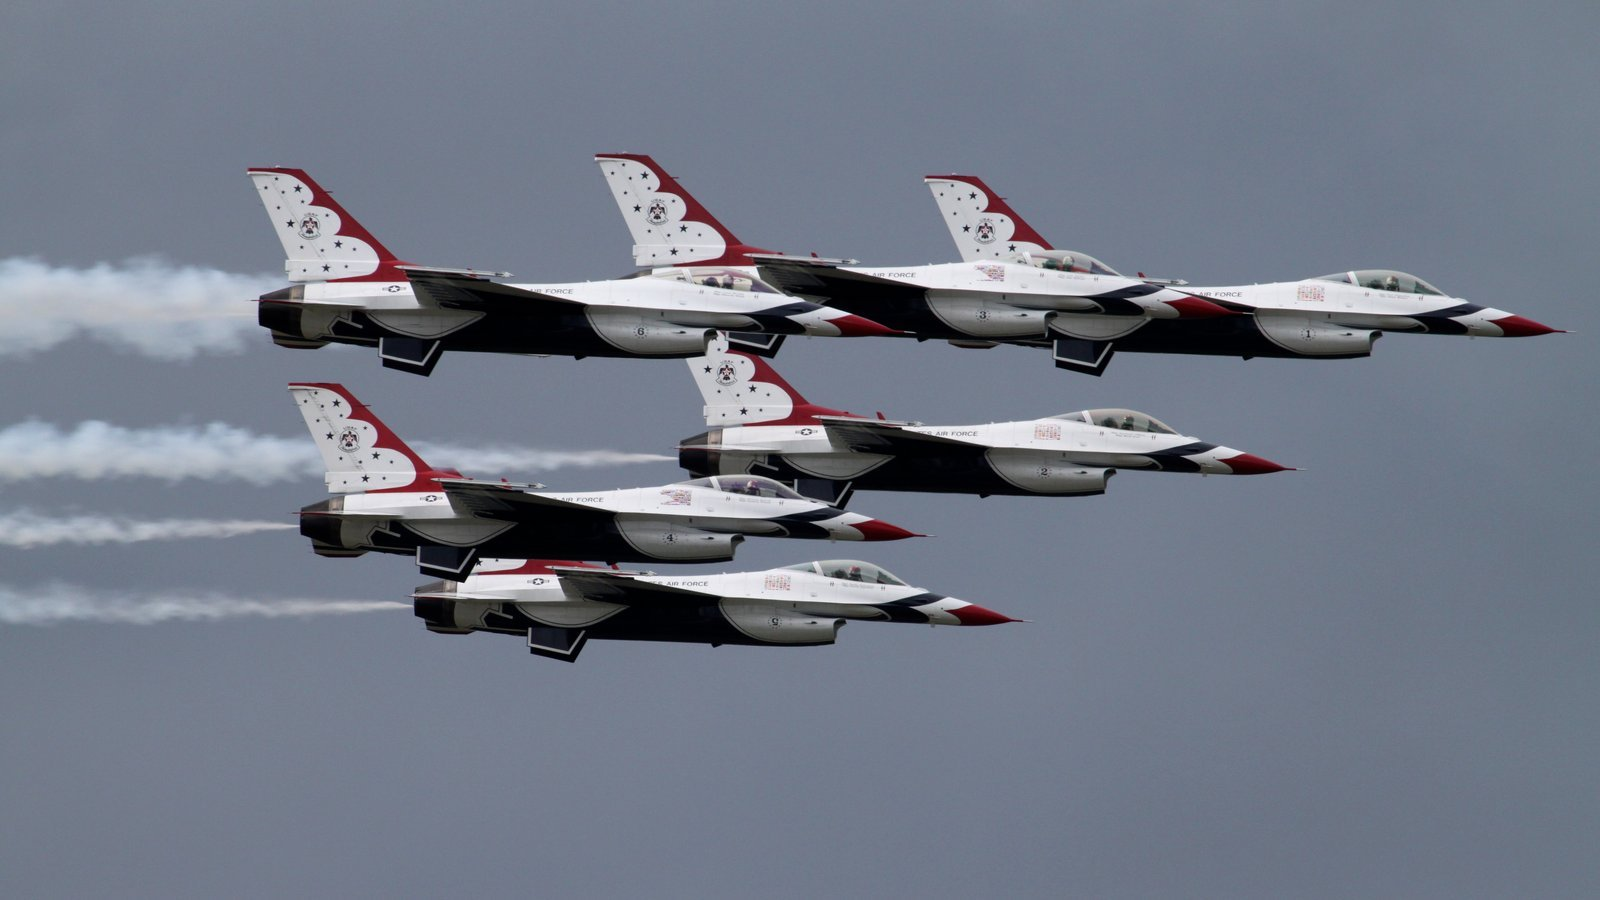 16 thunderbirds 5 plane - photo #18